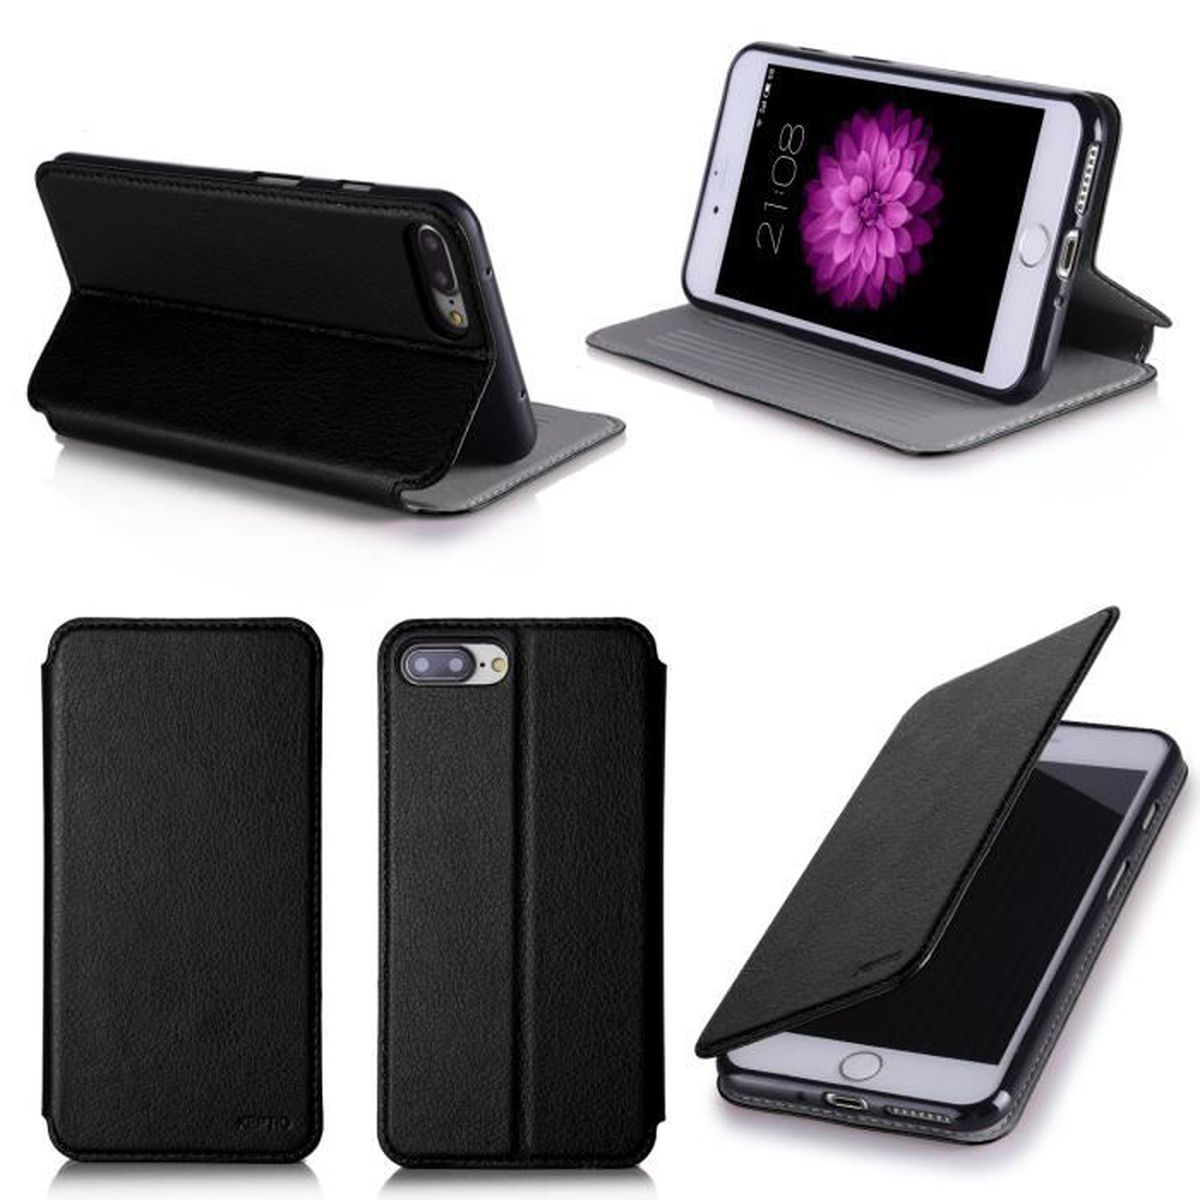 Etui coque apple iphone 7 plus 5 5 noir housse pochette for Housse iphone 7